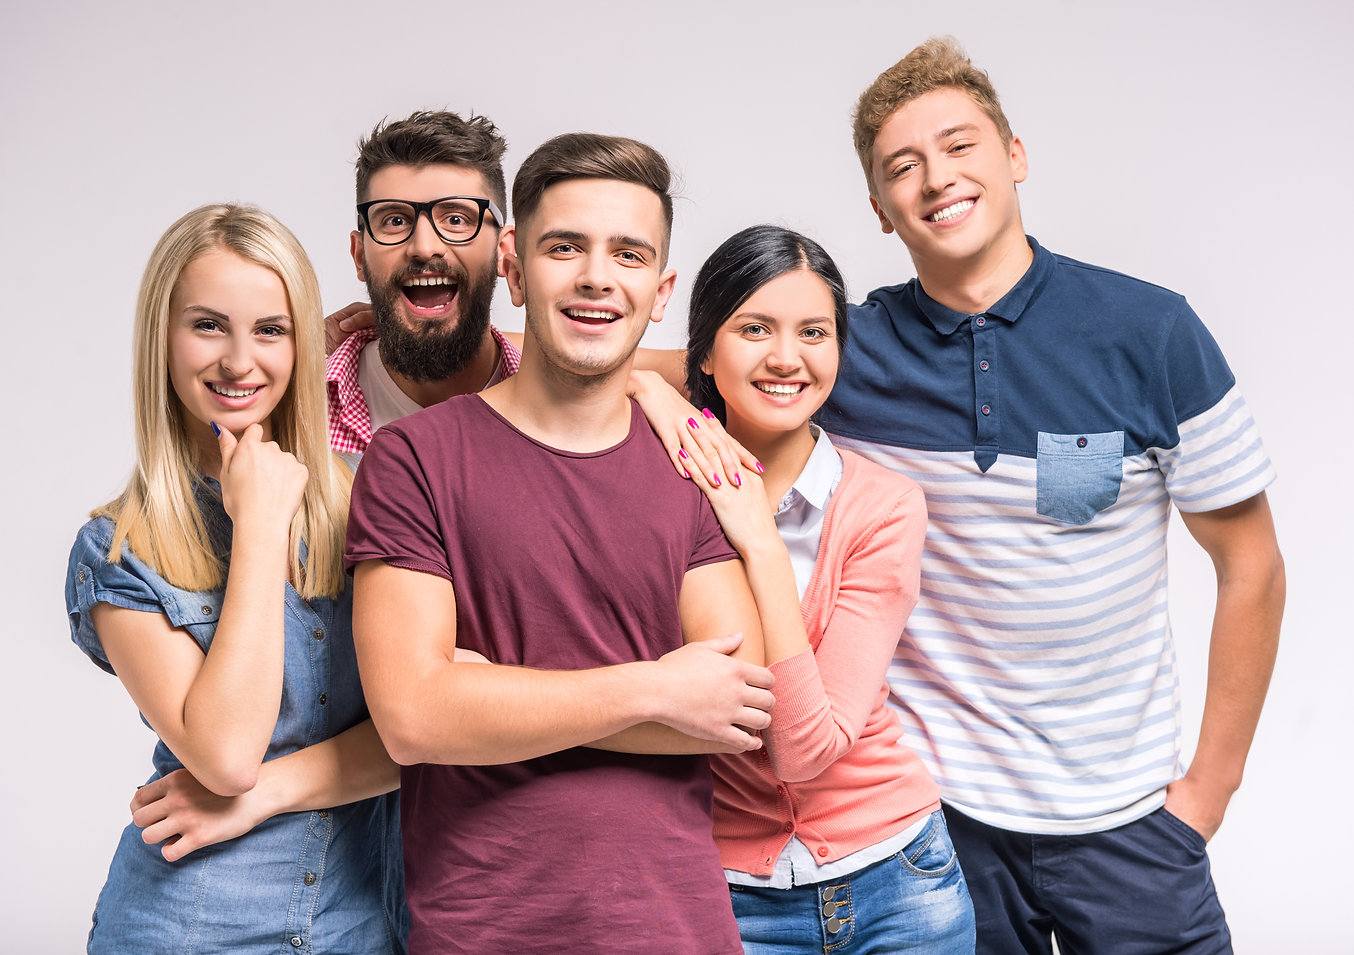 Funny young people on a gray background.